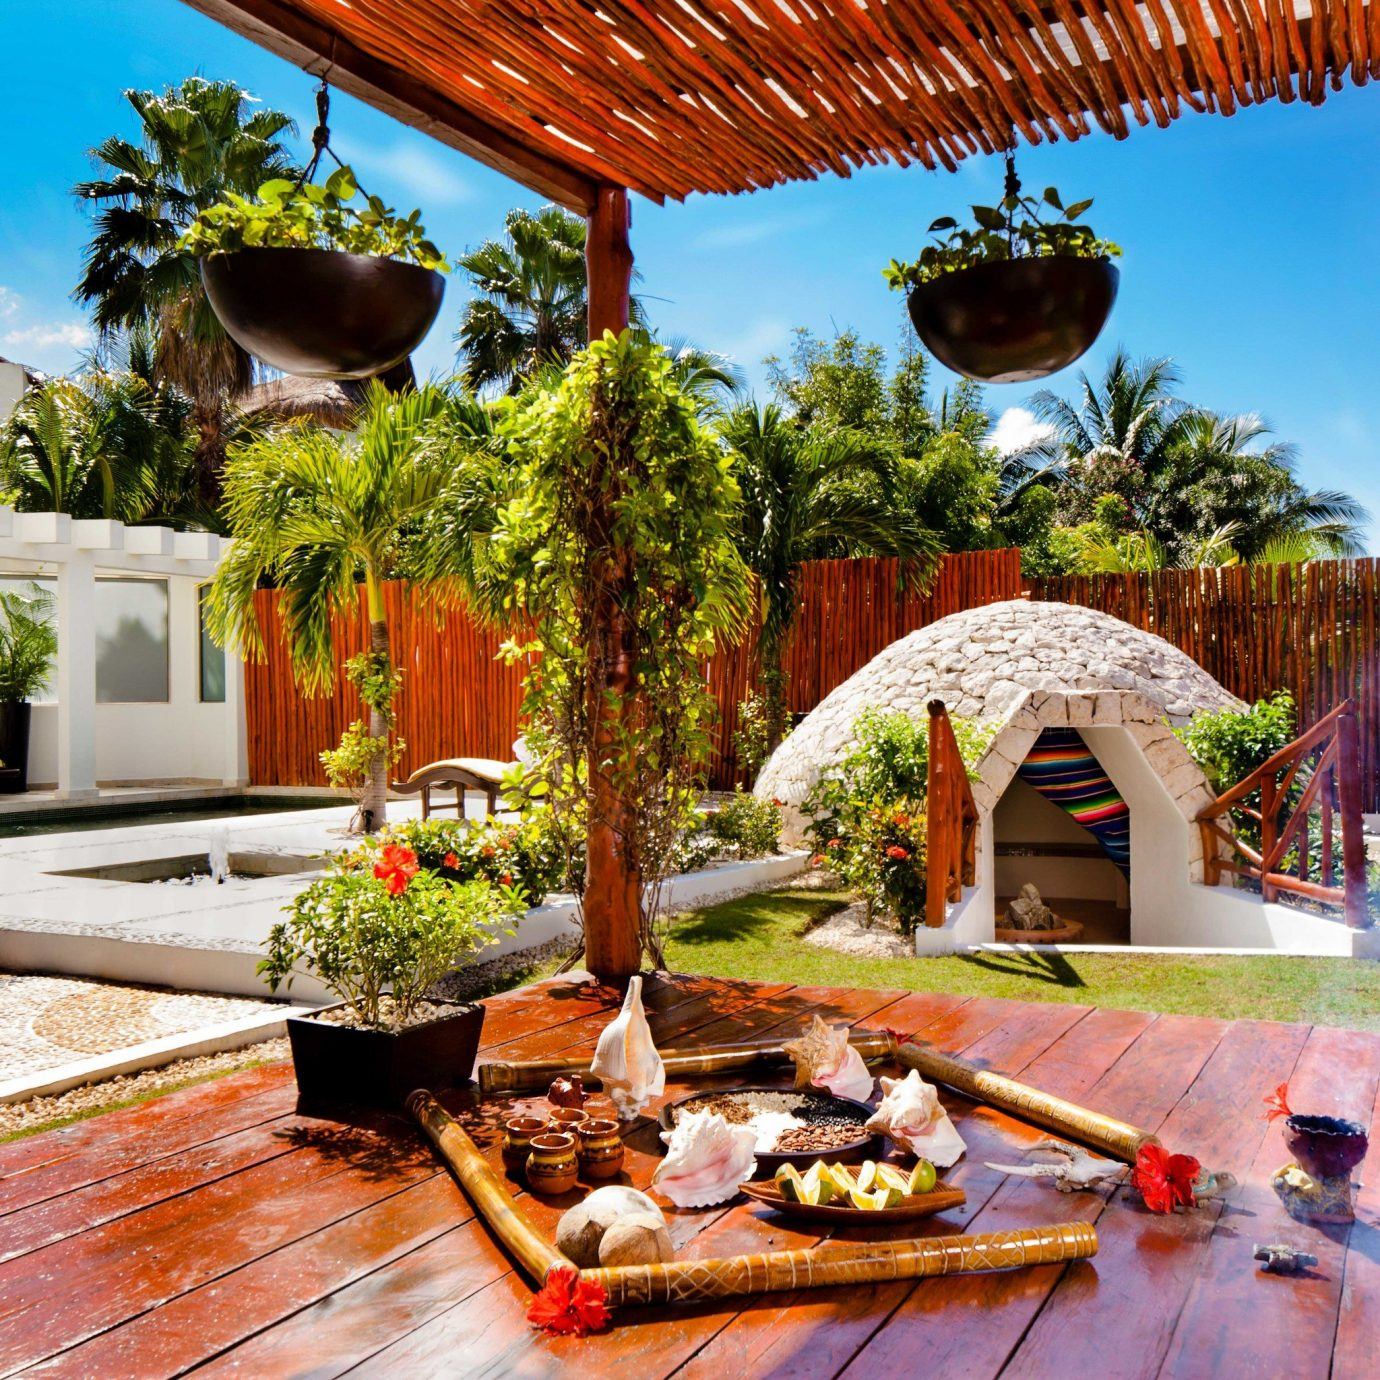 All-Inclusive Resorts property Resort plant backyard hacienda home leisure outdoor structure Courtyard Villa landscaping